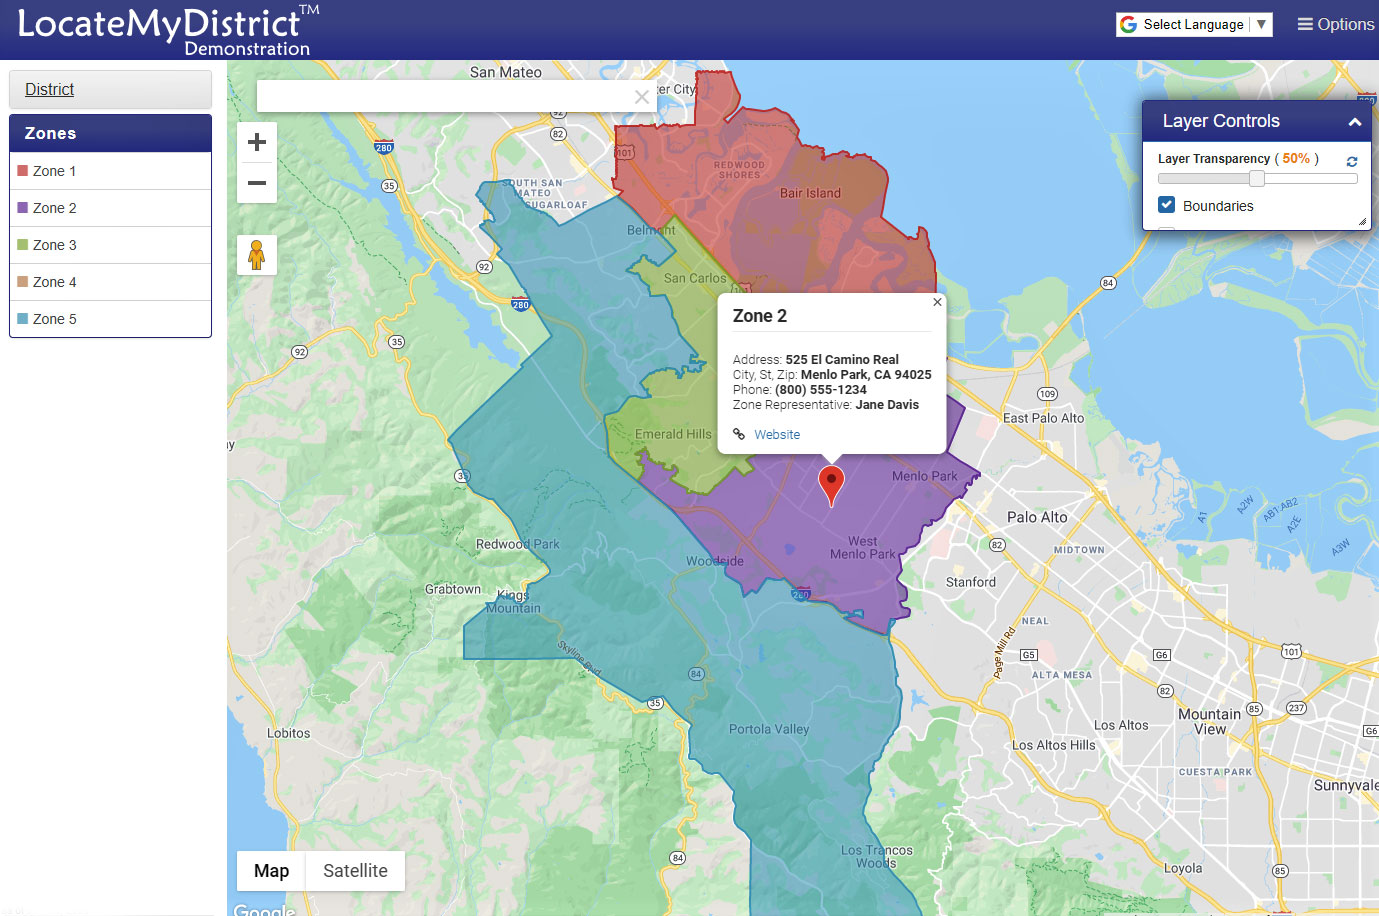 LocateMyDistrict™ Software-as-a-Service